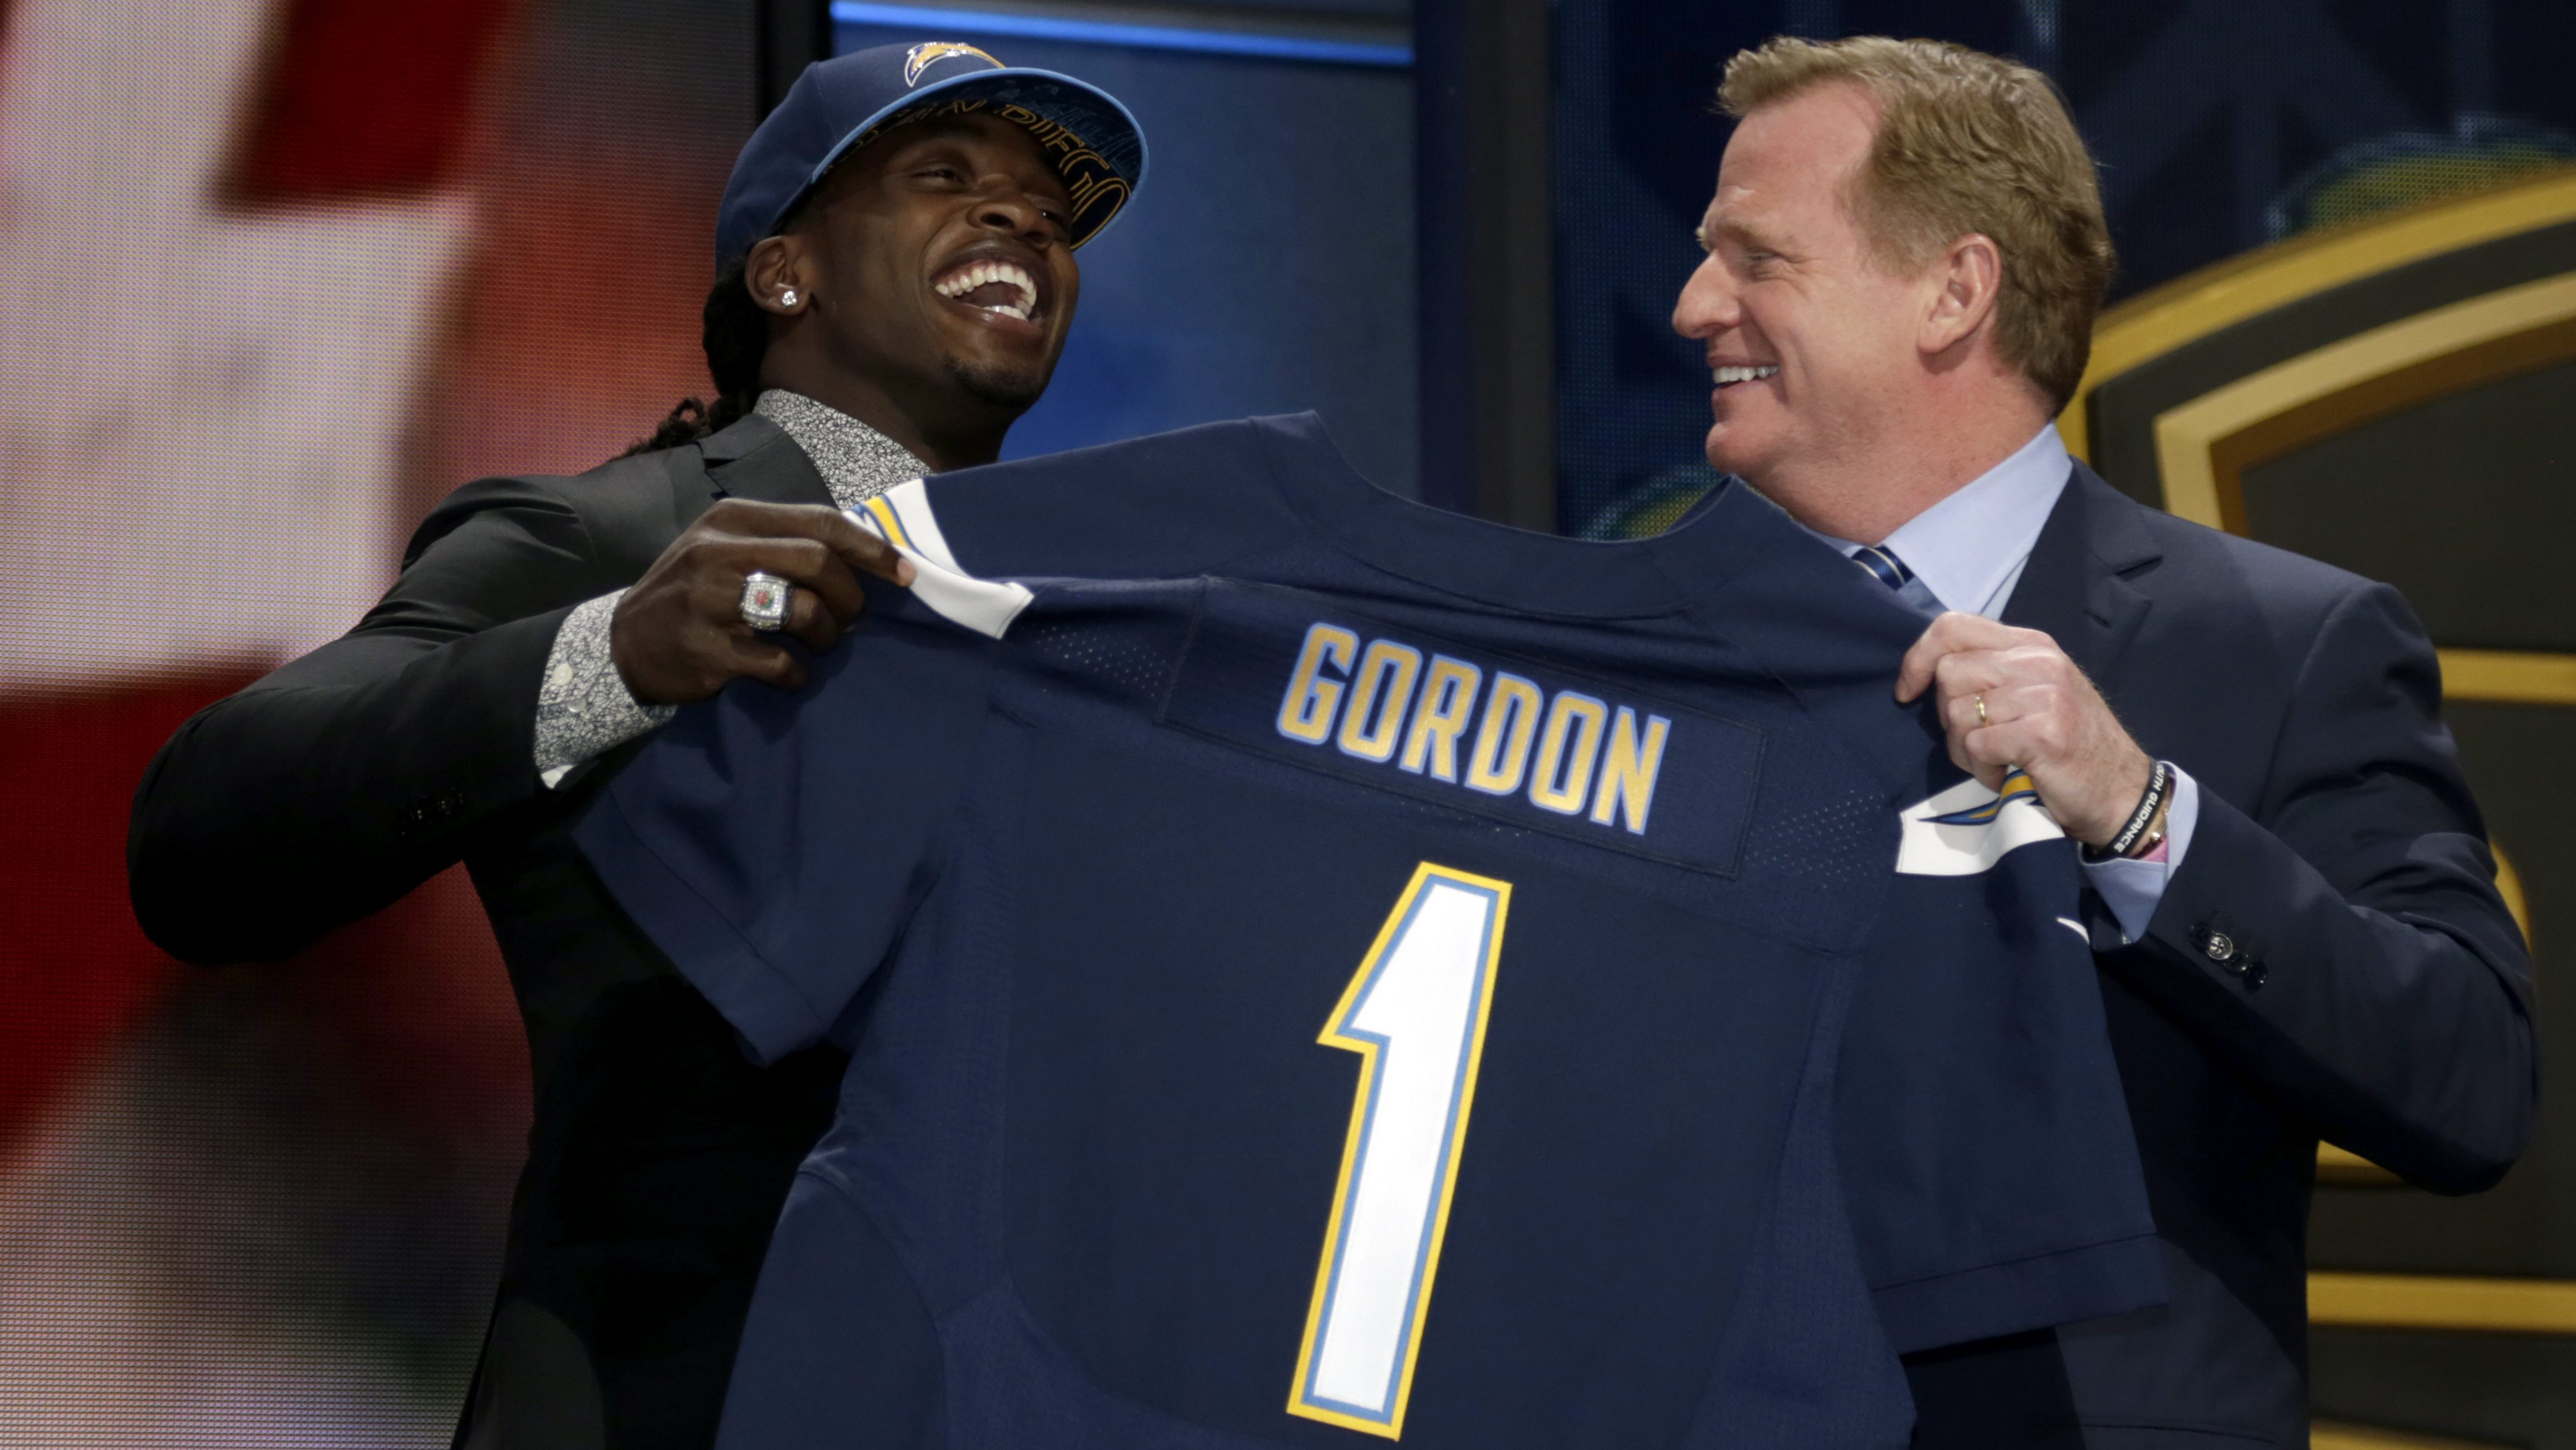 Melvin Gordon, Roger Goodell NFL Draft